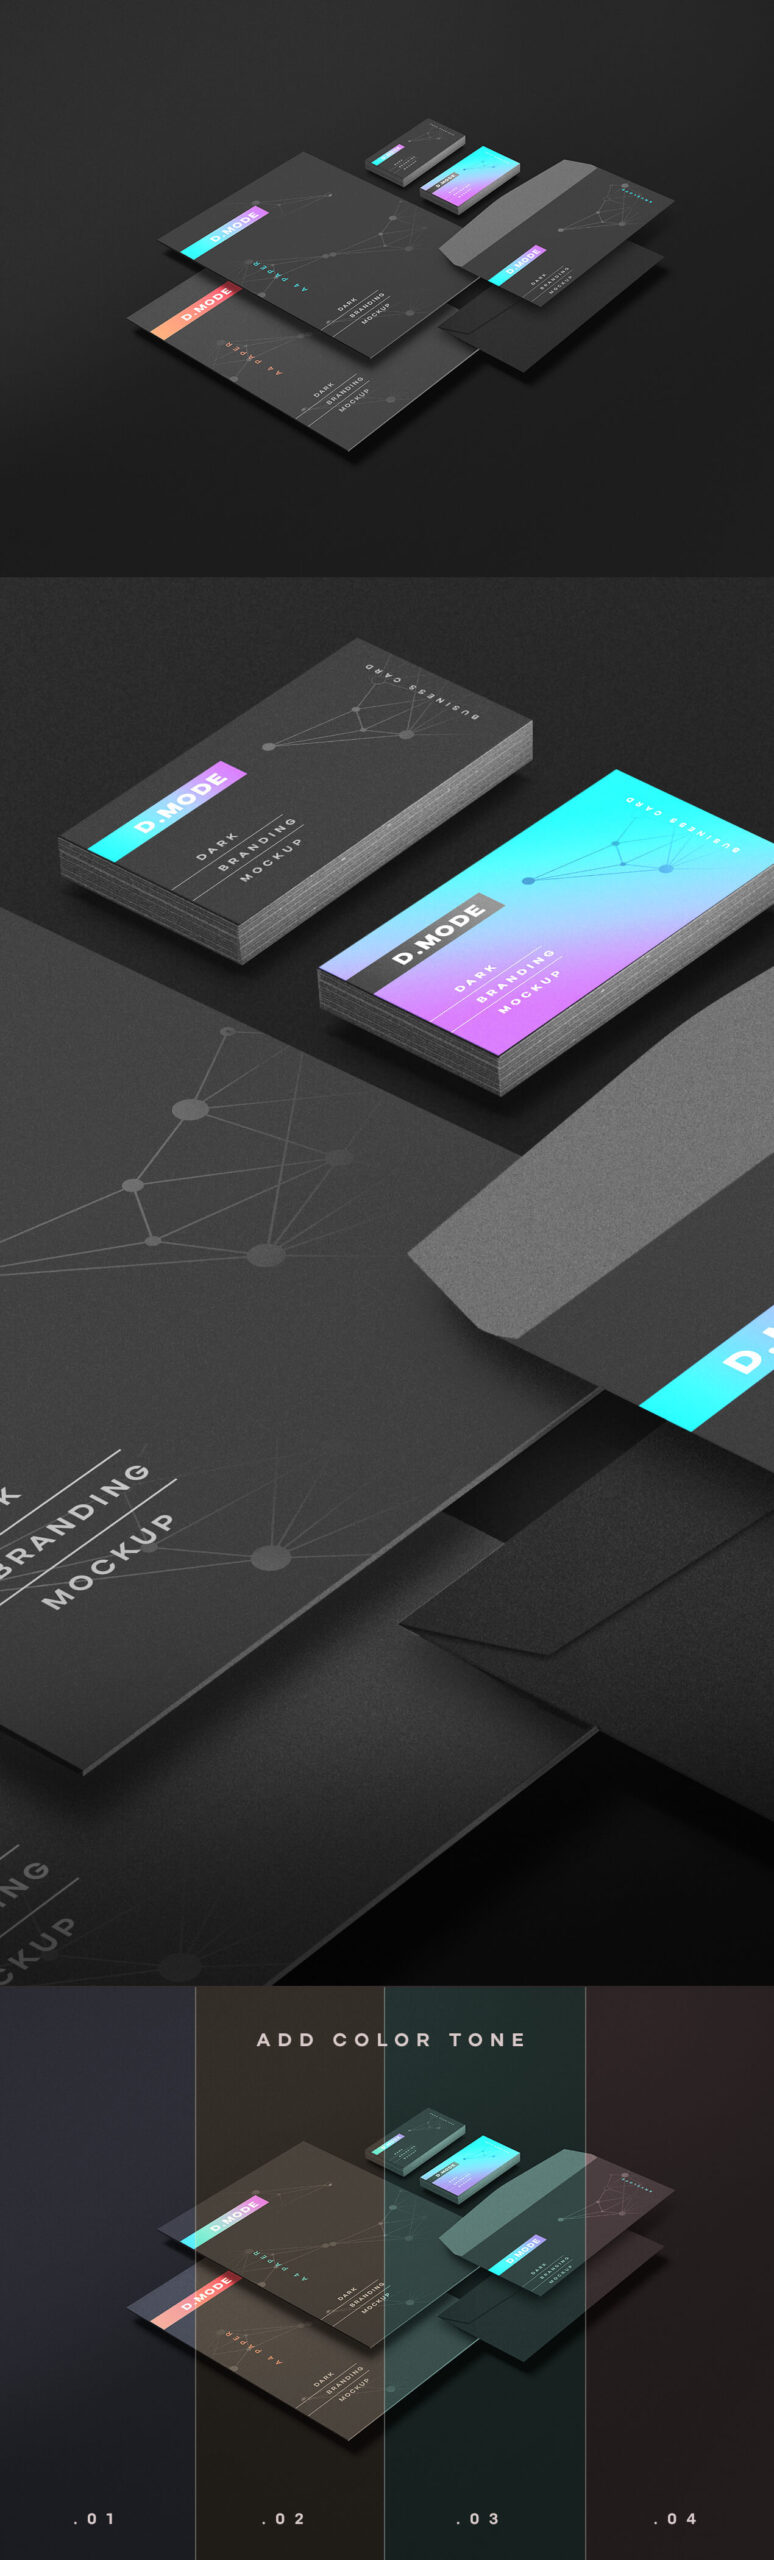 Free Finely Organized Dark Branding Mockup PSD Template